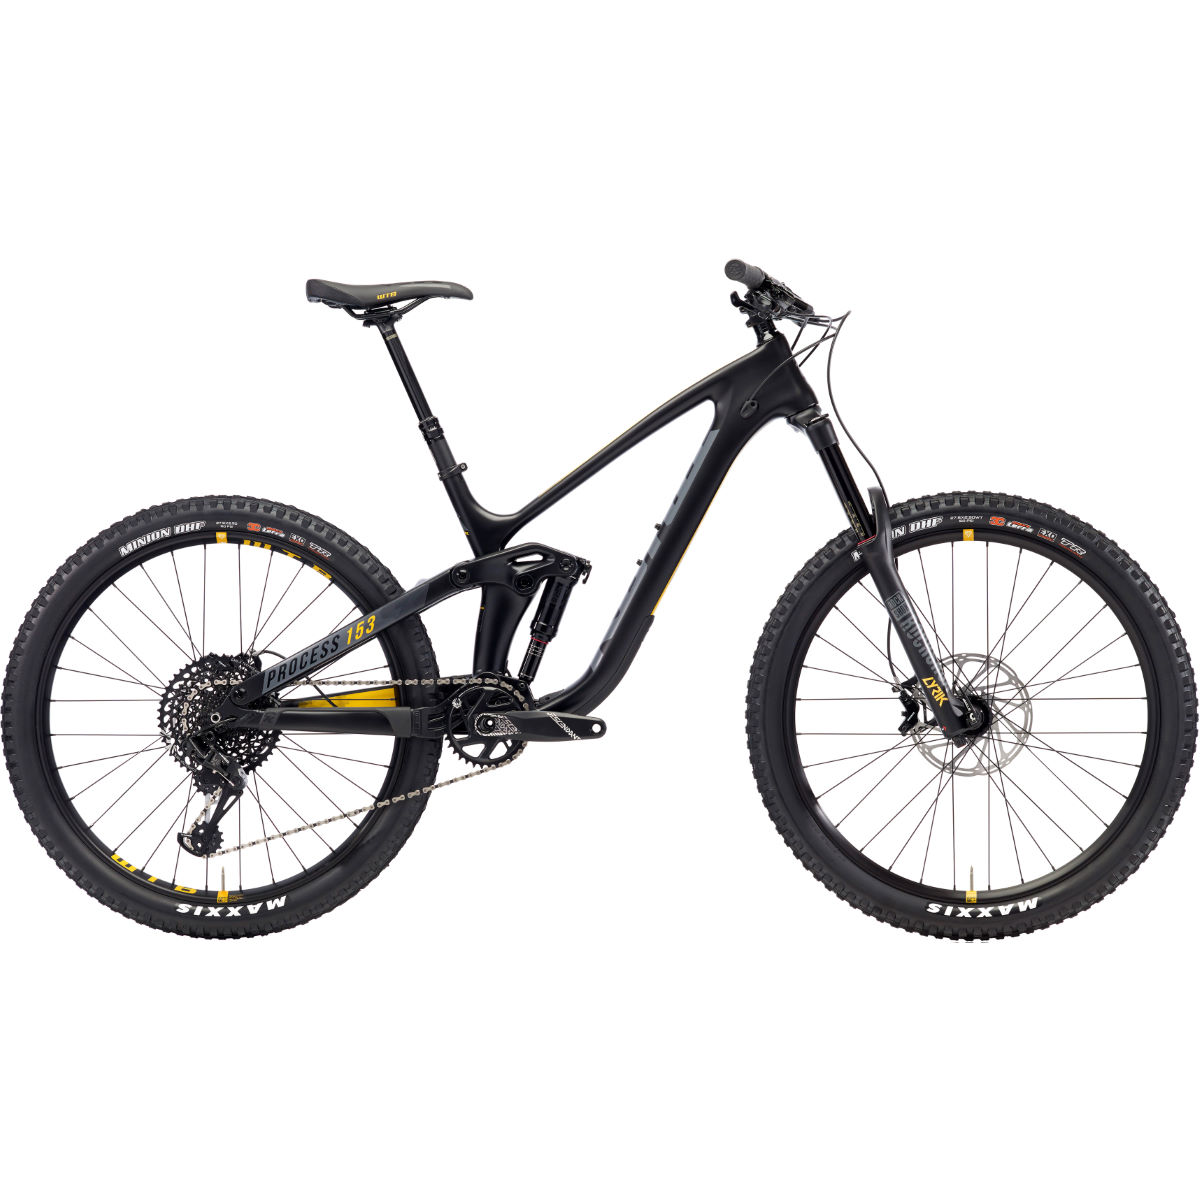 VTT Kona Process 153 CR 27,5 pouces (2018) - Medium Stock Bike Noir